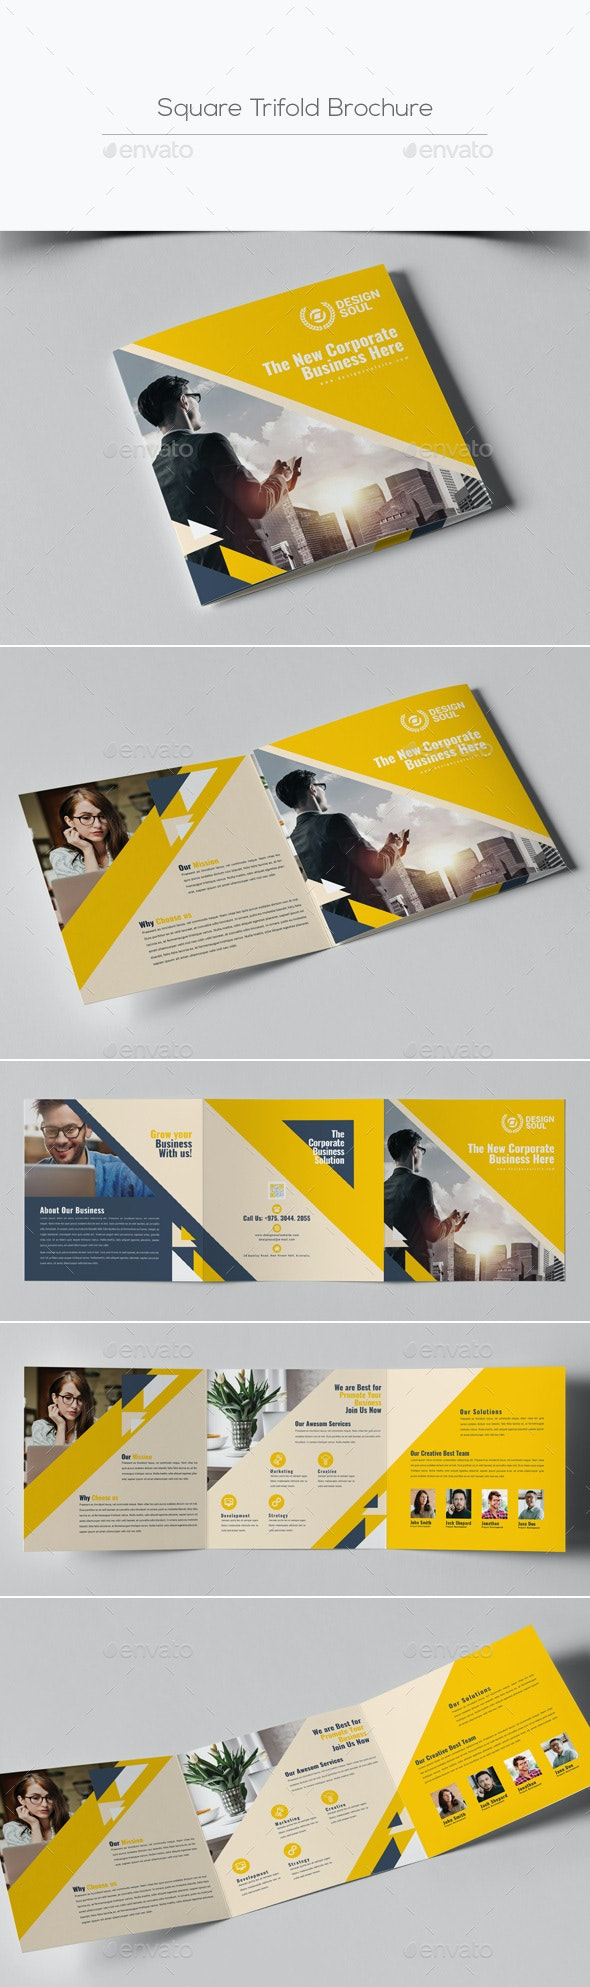 Corporate Square Trifold Brochure - Brochures Print Templates